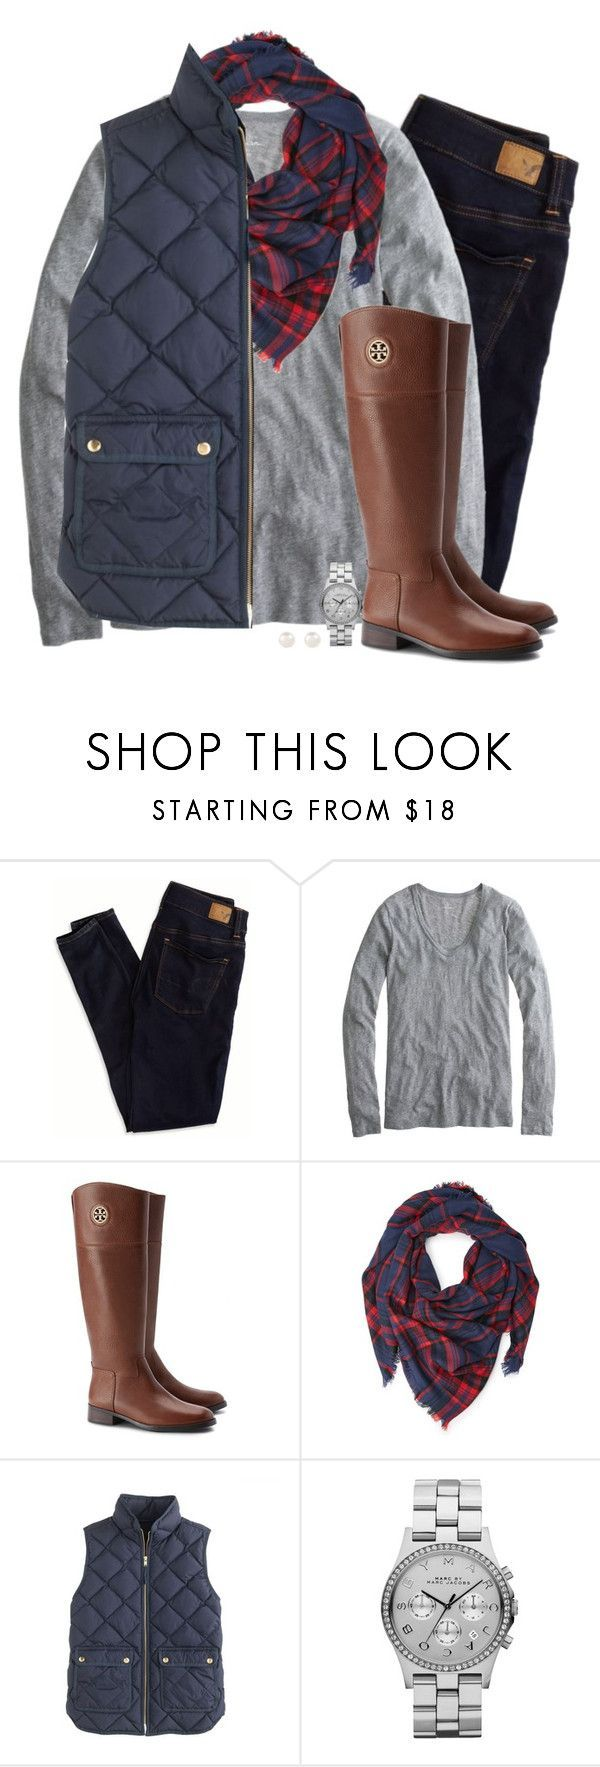 """""""Plaid, navy & gray"""" by steffiestaffie ❤ liked on Polyvore featuring American Eagle Outfitters, J.Crew, Tory Burch, Forever 21, Marc by Marc Jacobs and Accessorize"""